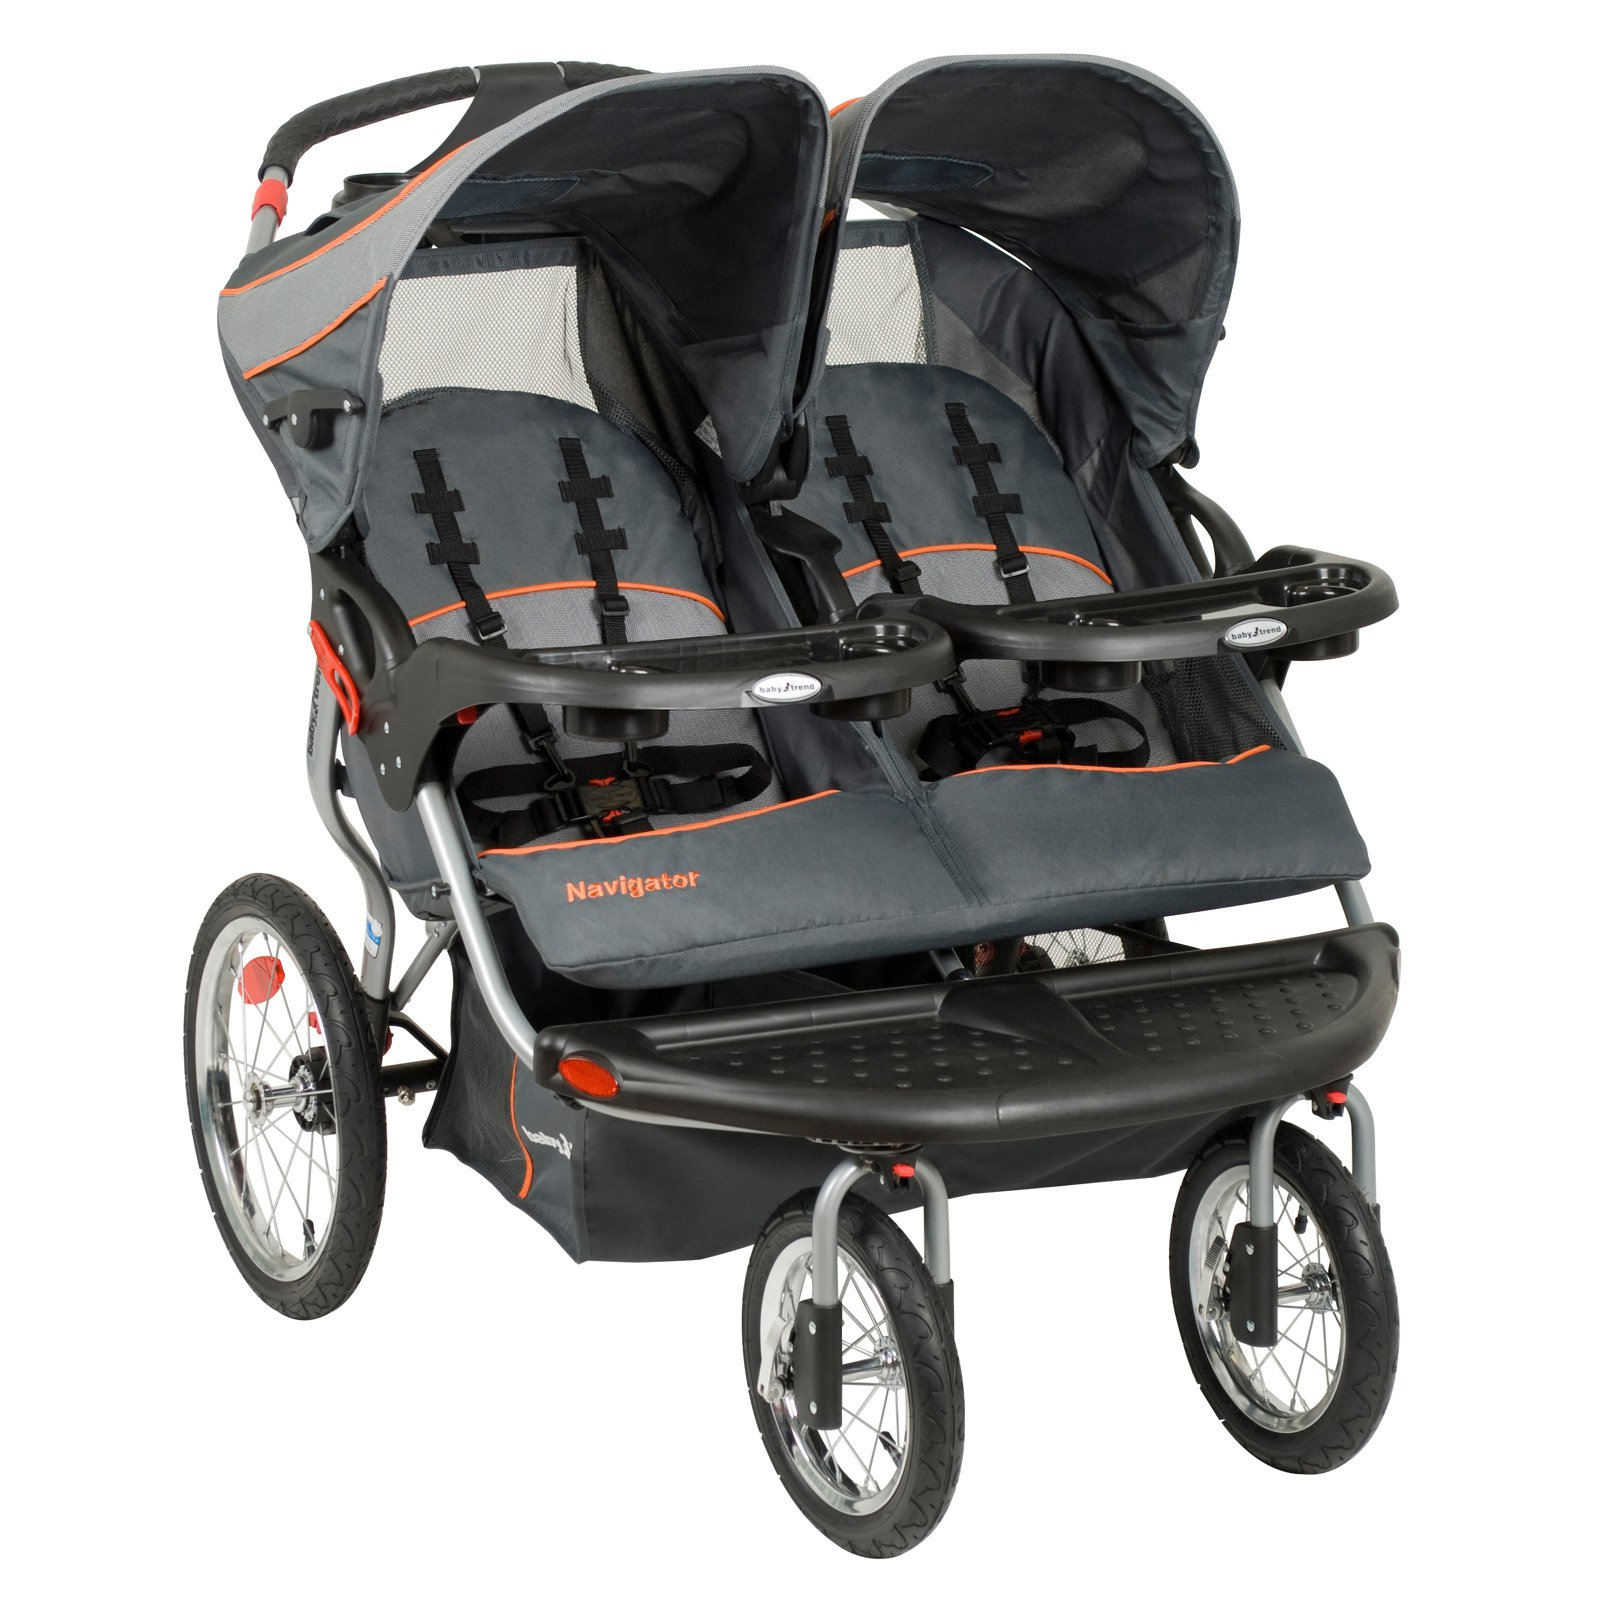 Baby Trend Navigator Jogger Vanguard Products in 2019